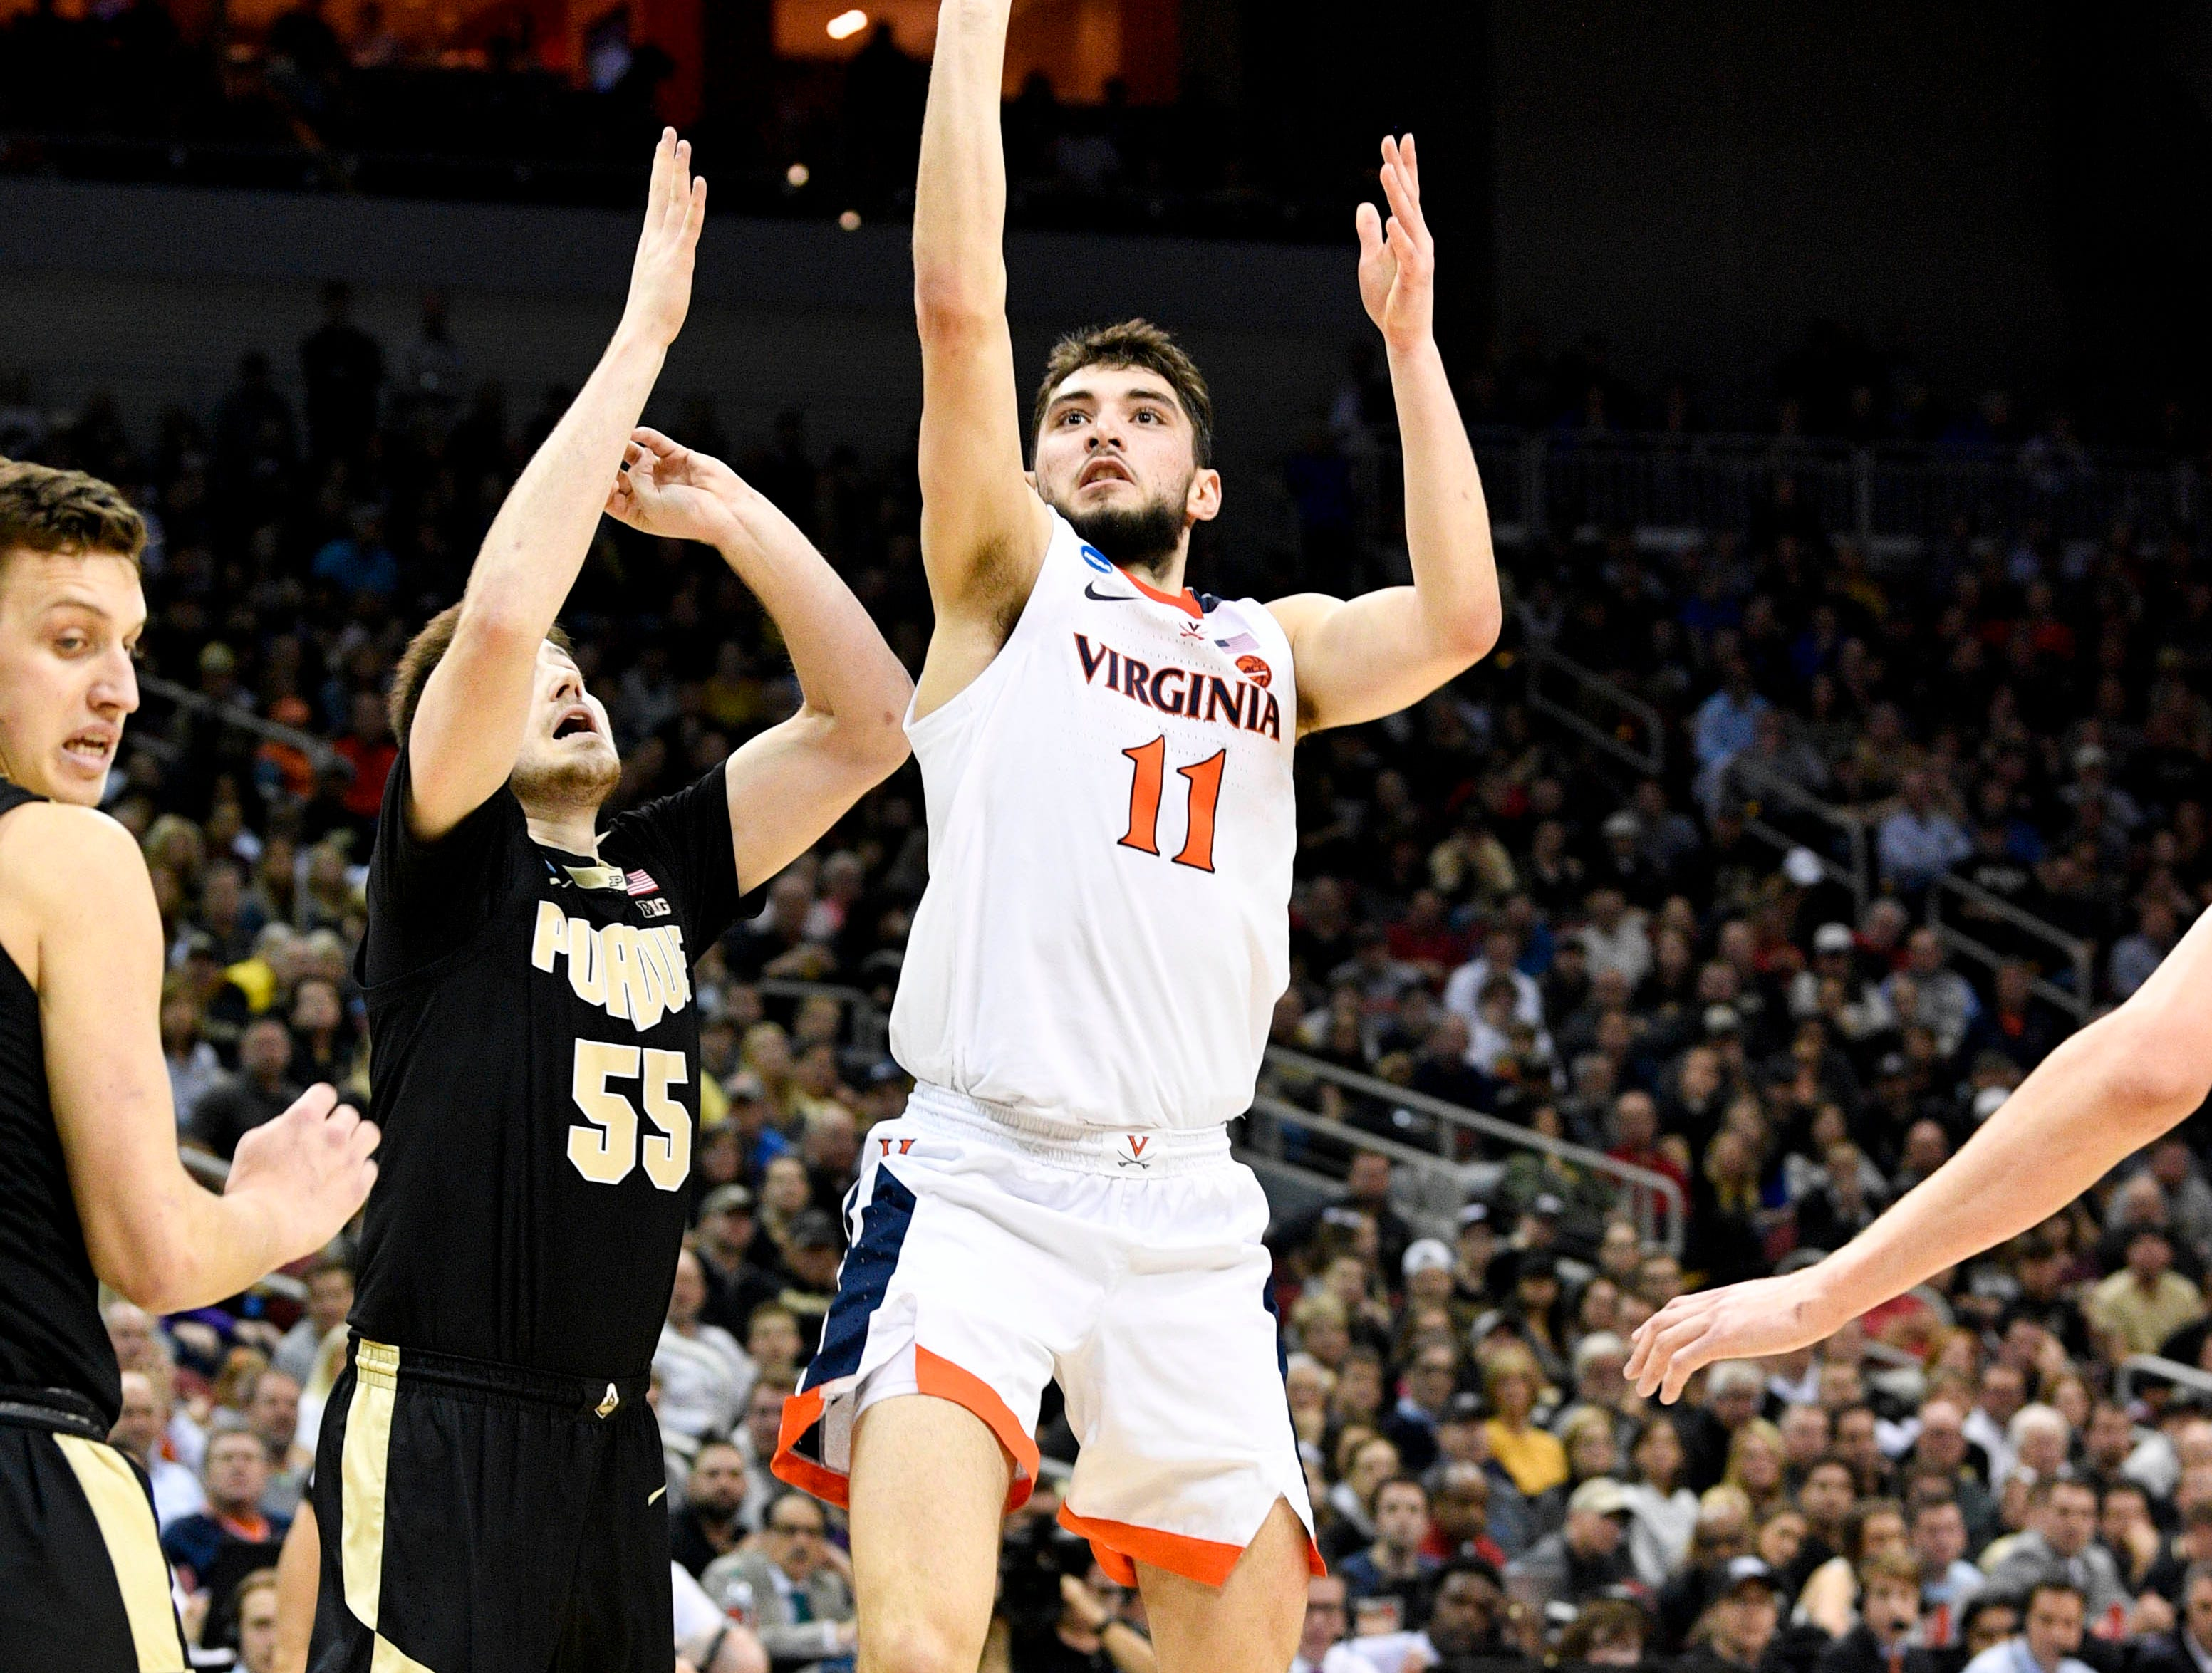 Mar 30, 2019; Louisville, KY, United States; Virginia Cavaliers guard Ty Jerome (11) shoots as Purdue Boilermakers guard Sasha Stefanovic (55) defends during the first half in the championship game of the south regional of the 2019 NCAA Tournament at KFC Yum Center. Mandatory Credit: Jamie Rhodes-USA TODAY Sports